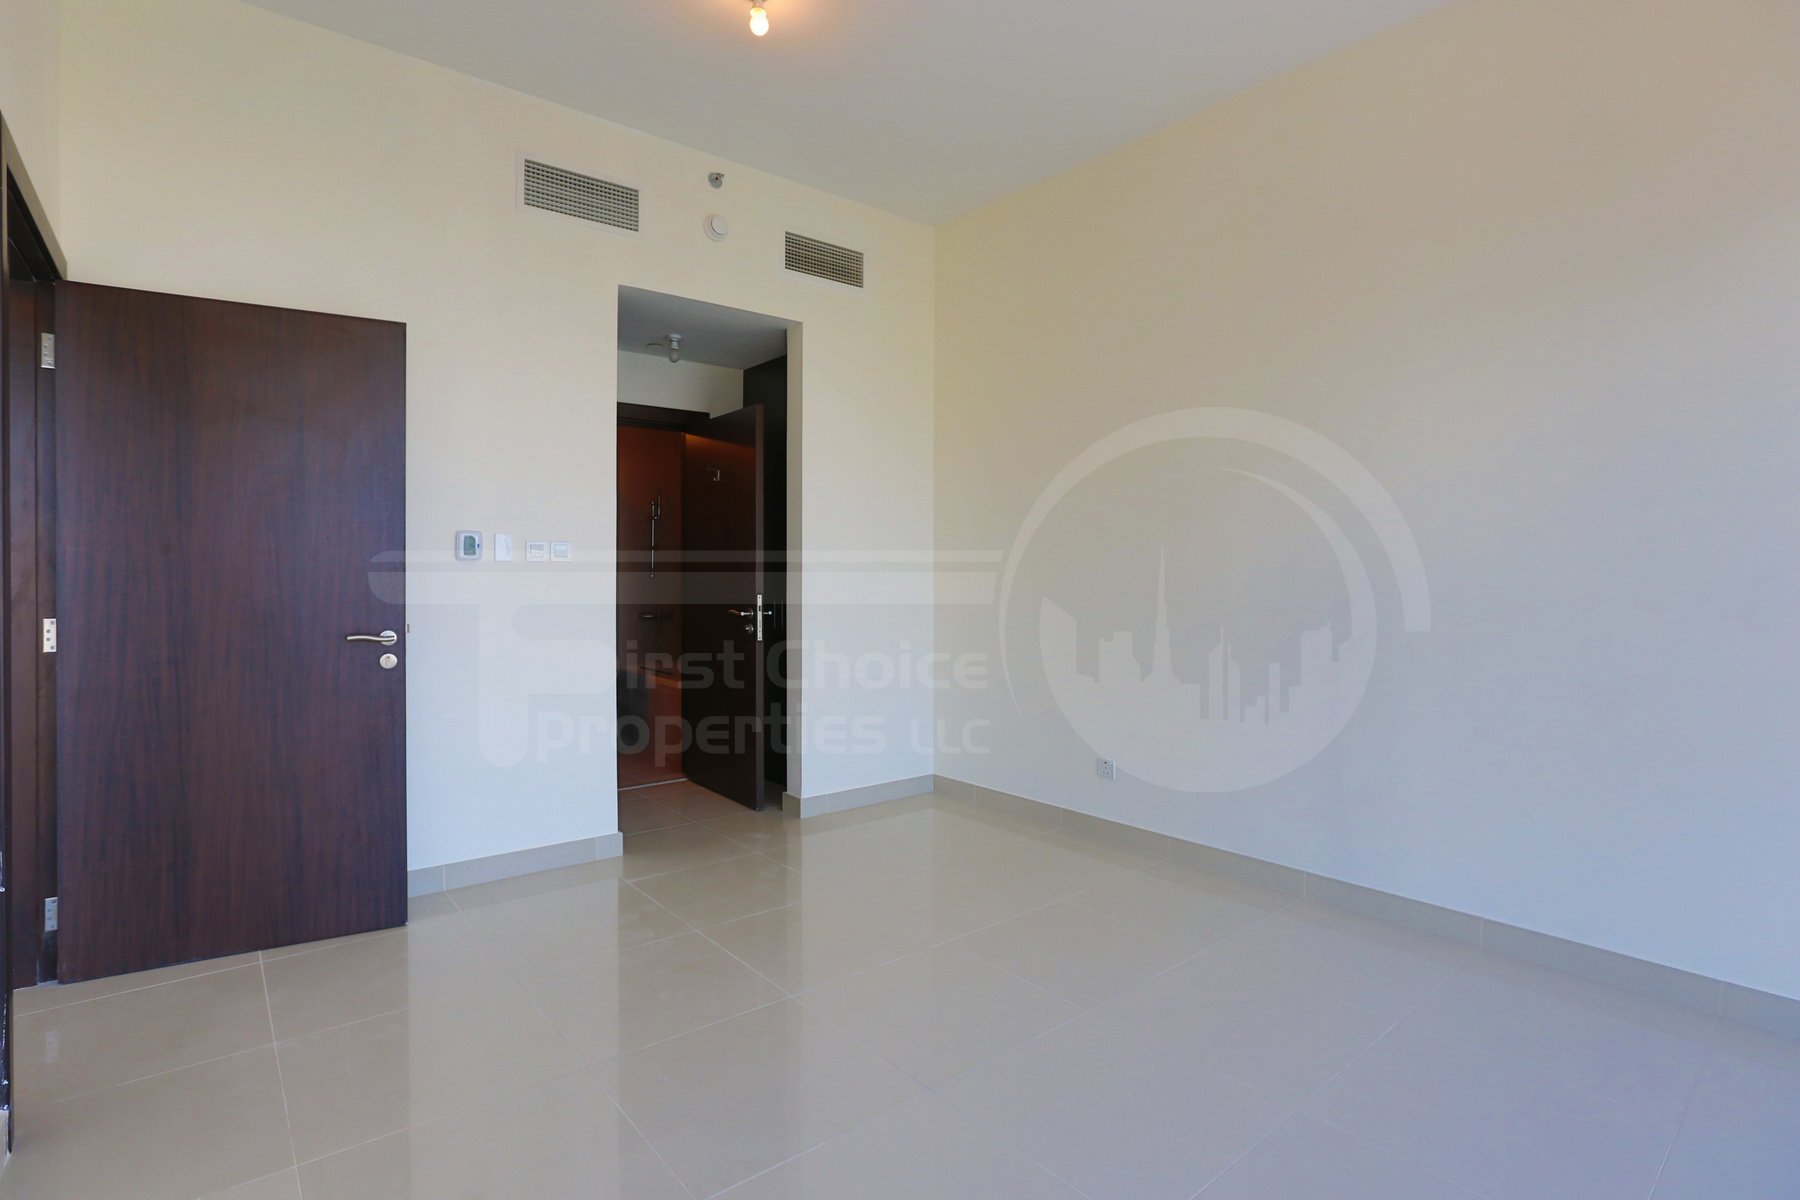 1BR Apartment - Abu Dhabi - UAE - Al Reem Island - City of Lights - C10 Building (22).JPG